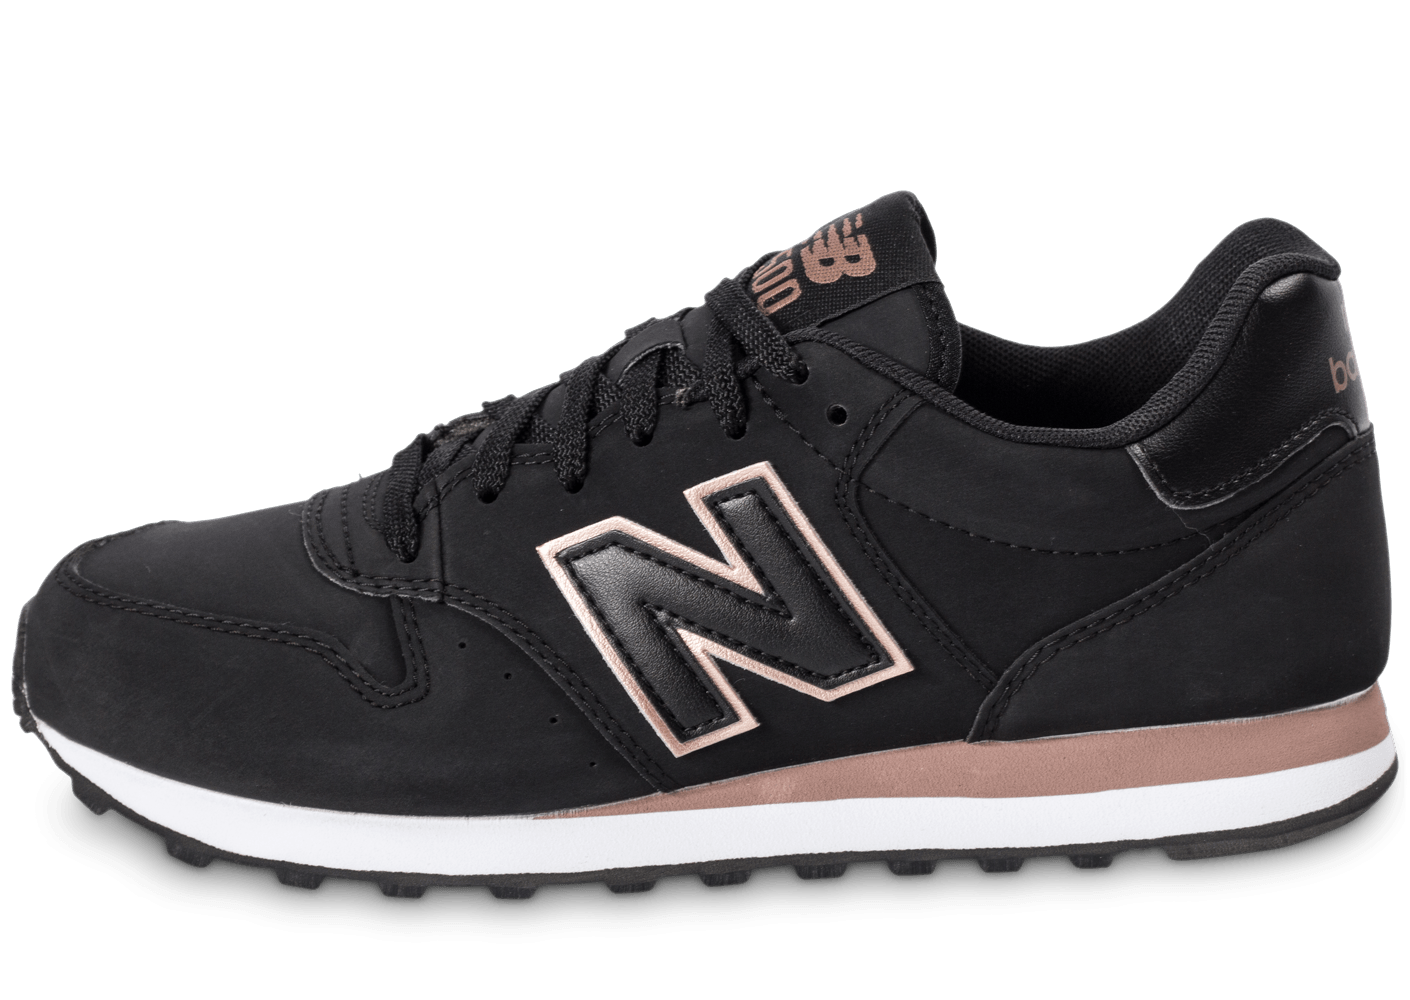 new balance gw 500 br noire chaussures femme chausport. Black Bedroom Furniture Sets. Home Design Ideas